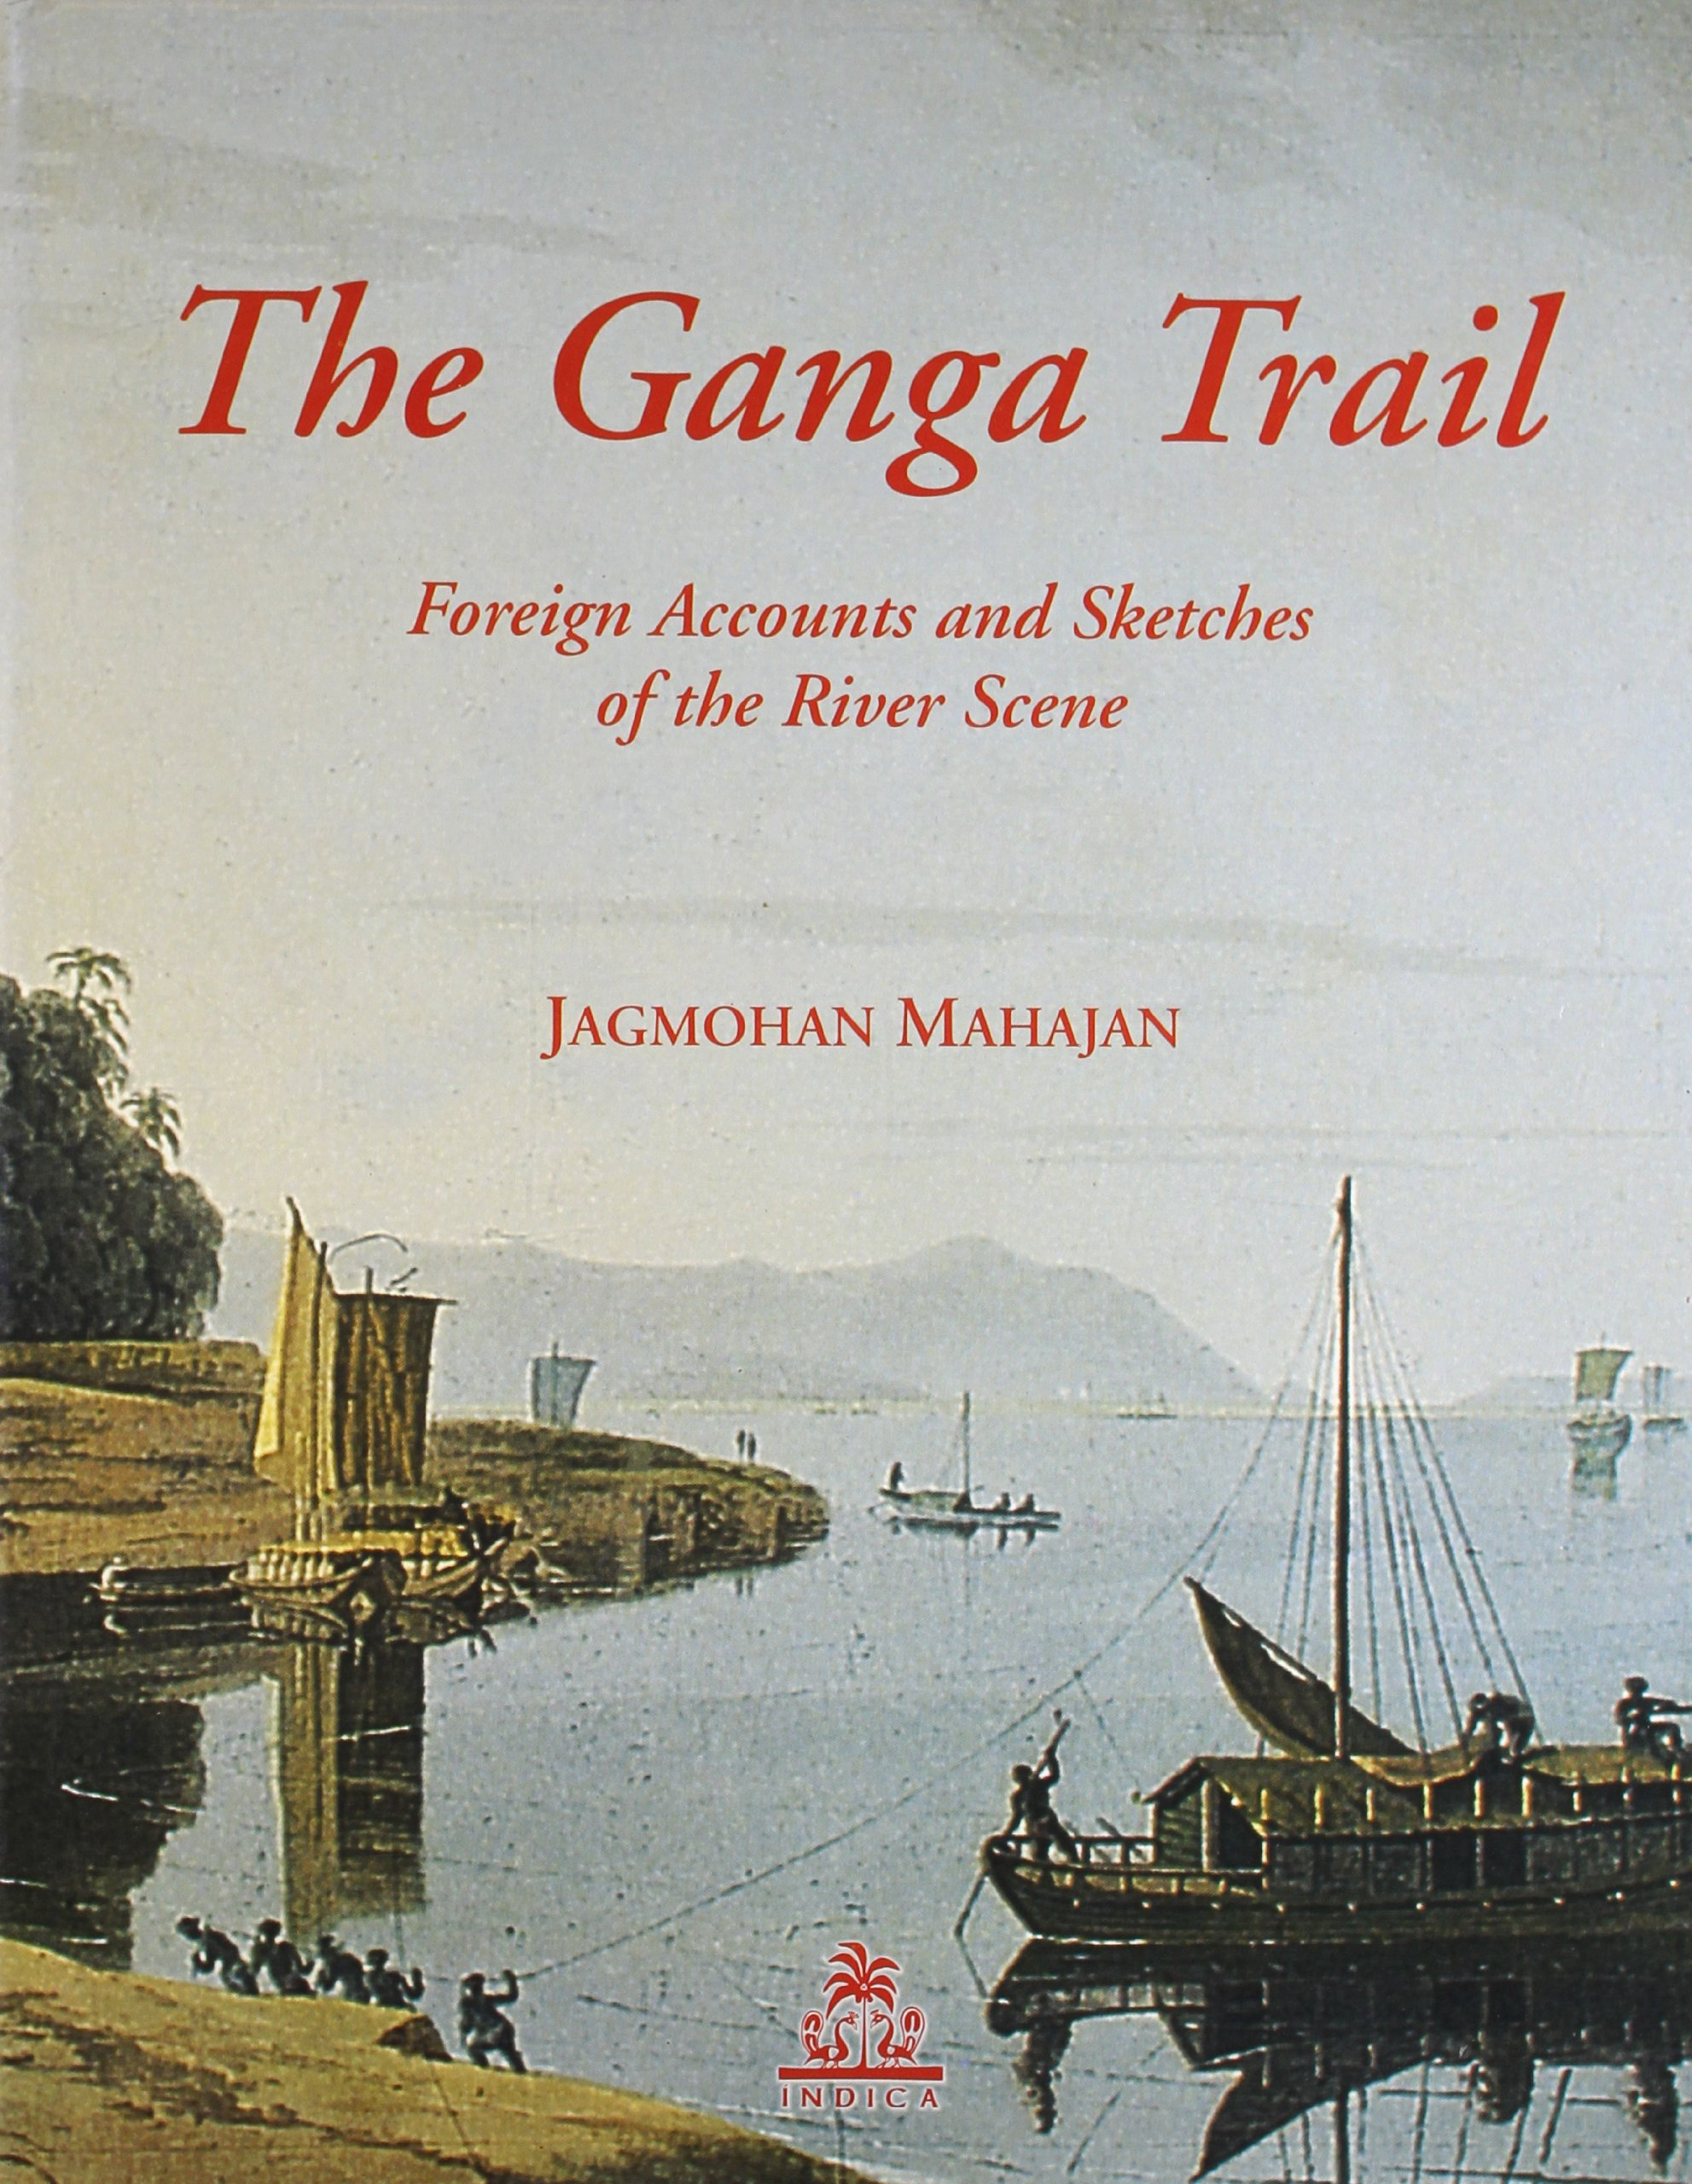 Download The Ganga Trail: Foreign Accounts and Sketches of the River Scene ebook